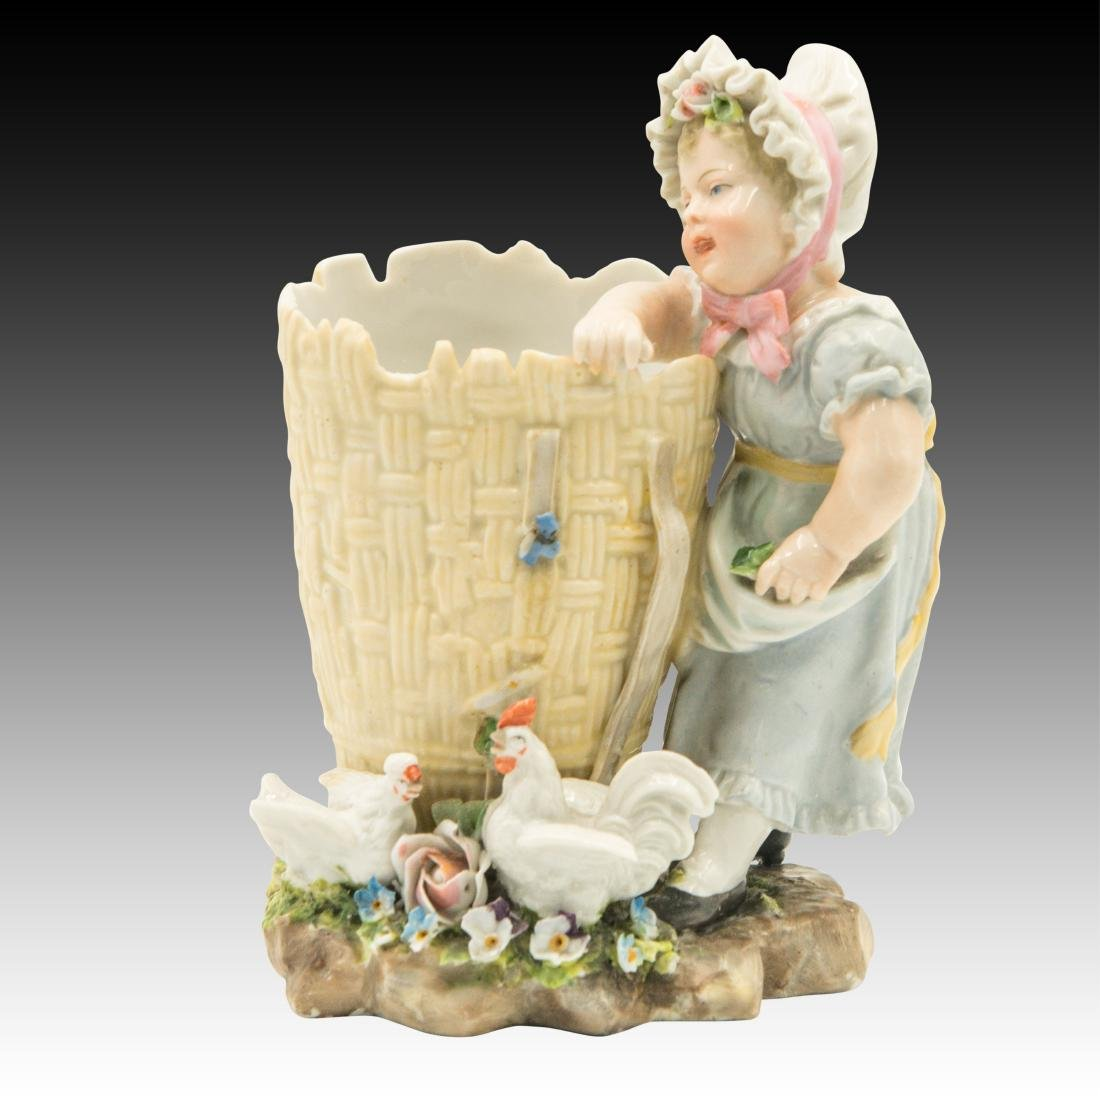 Young Girl Leaning on a Basket Figurine